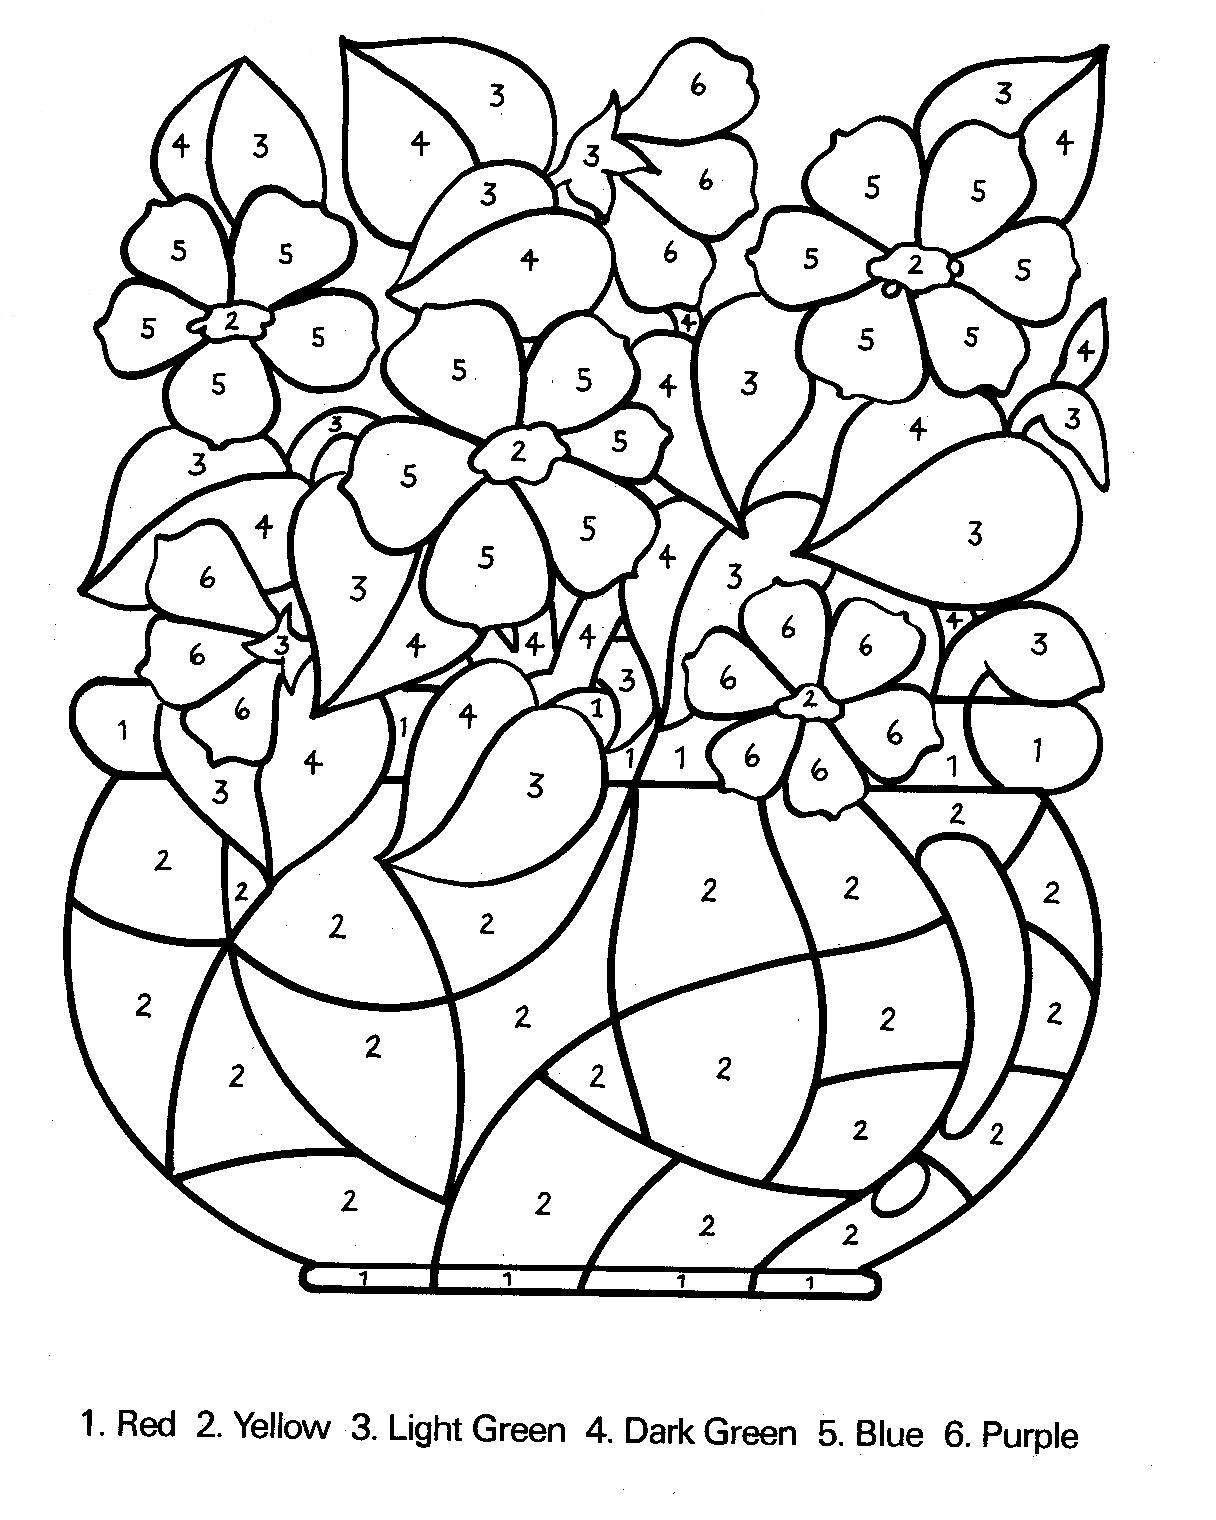 number flowers coloring sheets | Digg Stumbleupon Del.icio.us ...